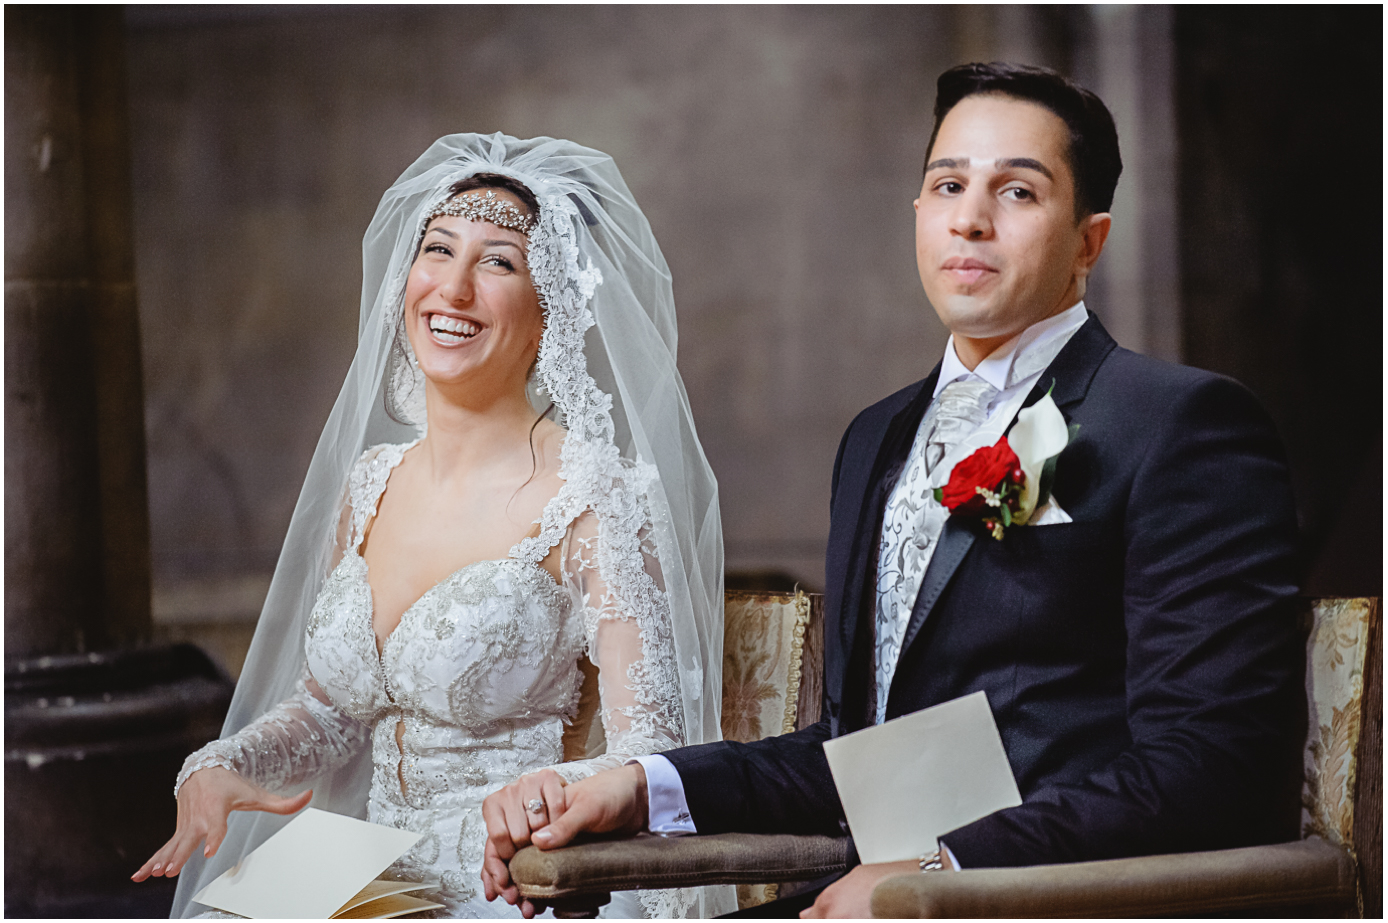 iranian wedding photographer 73 - Drapers Hall London Wedding Photographer